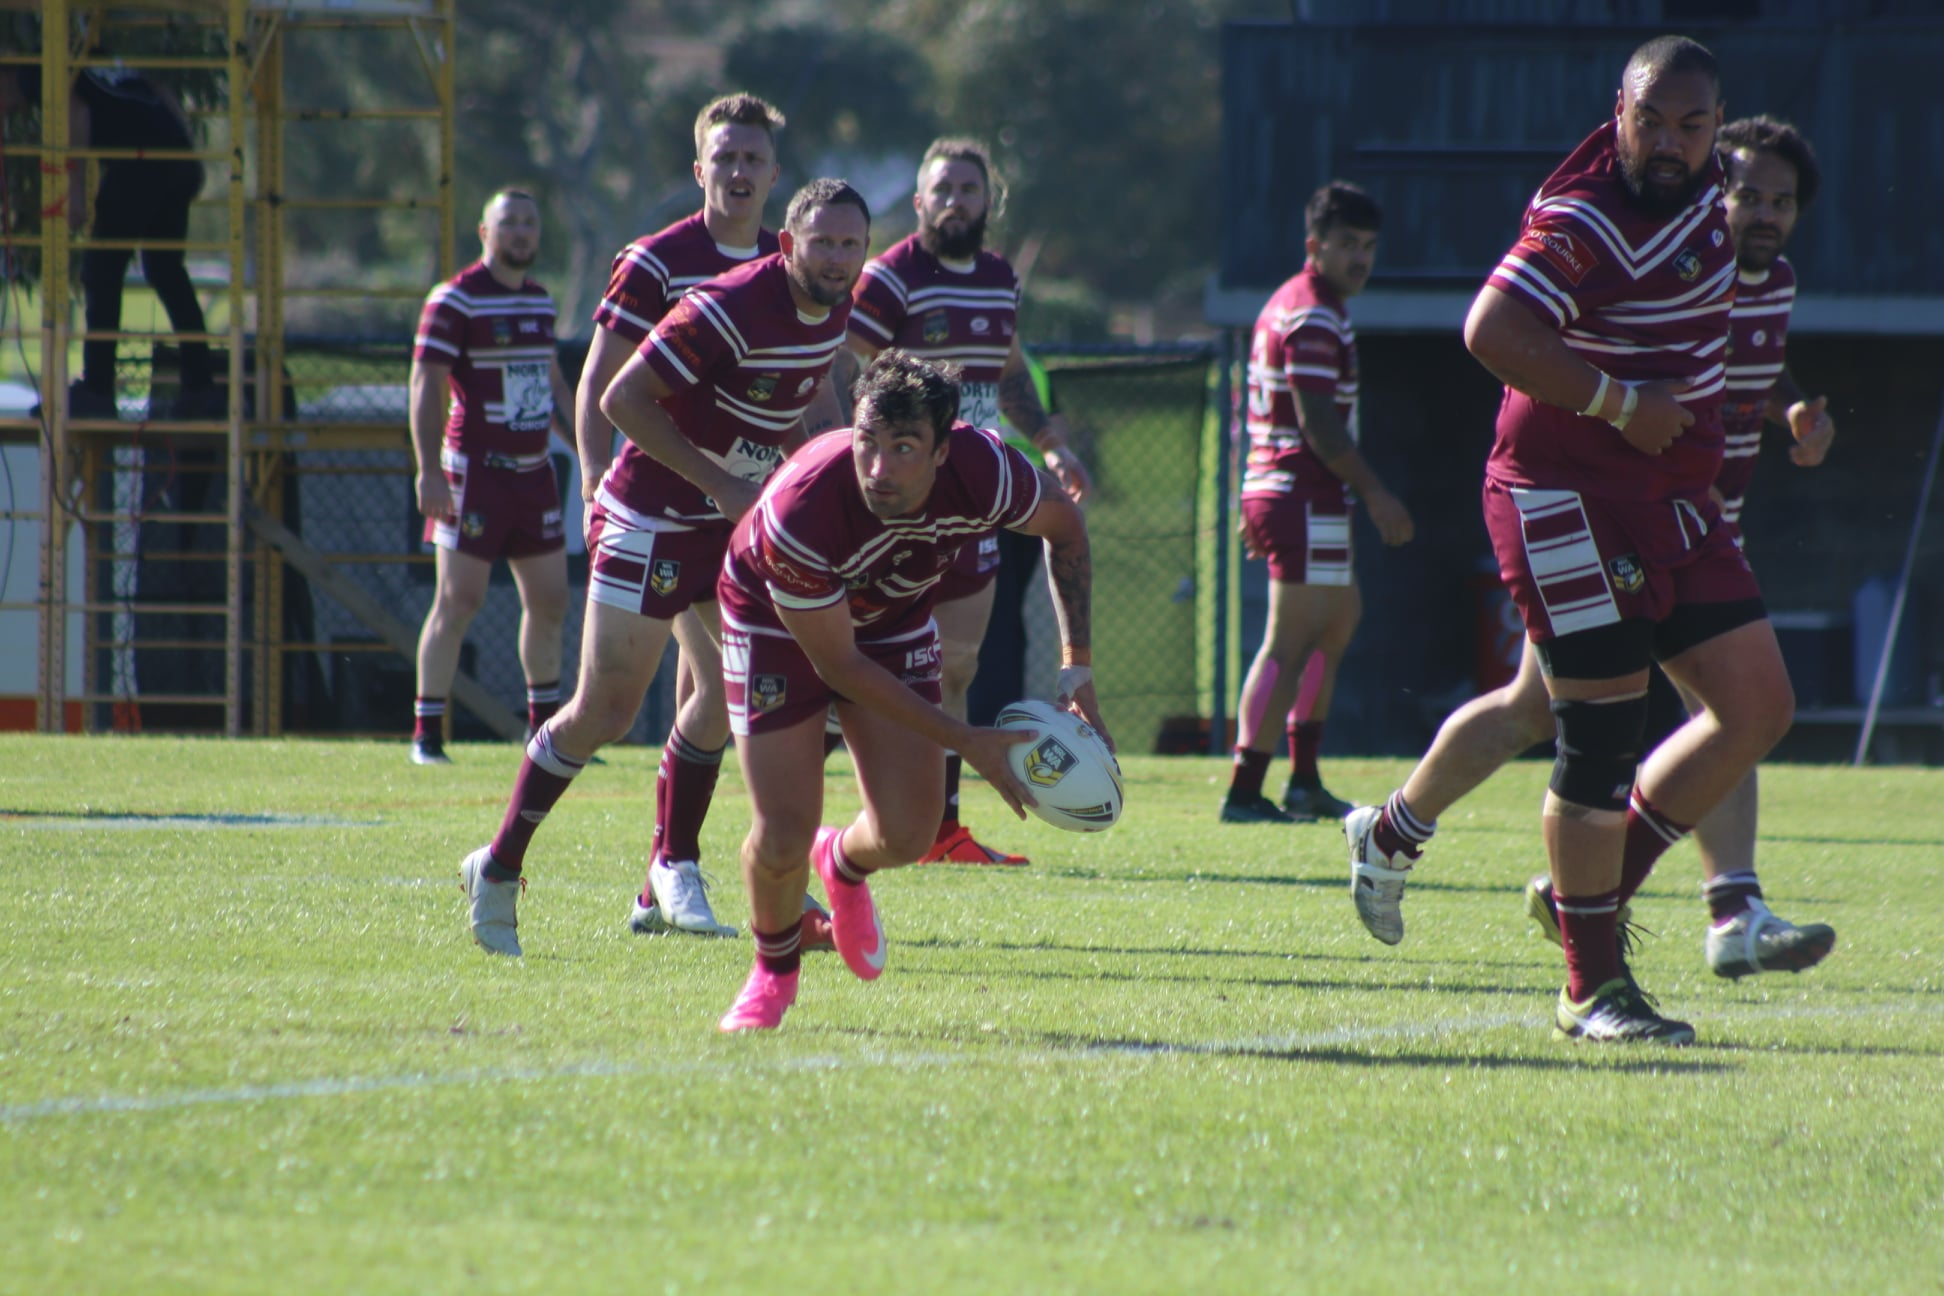 North Beach record back to back wins to move to top spot in NRL WA Men's Premiership